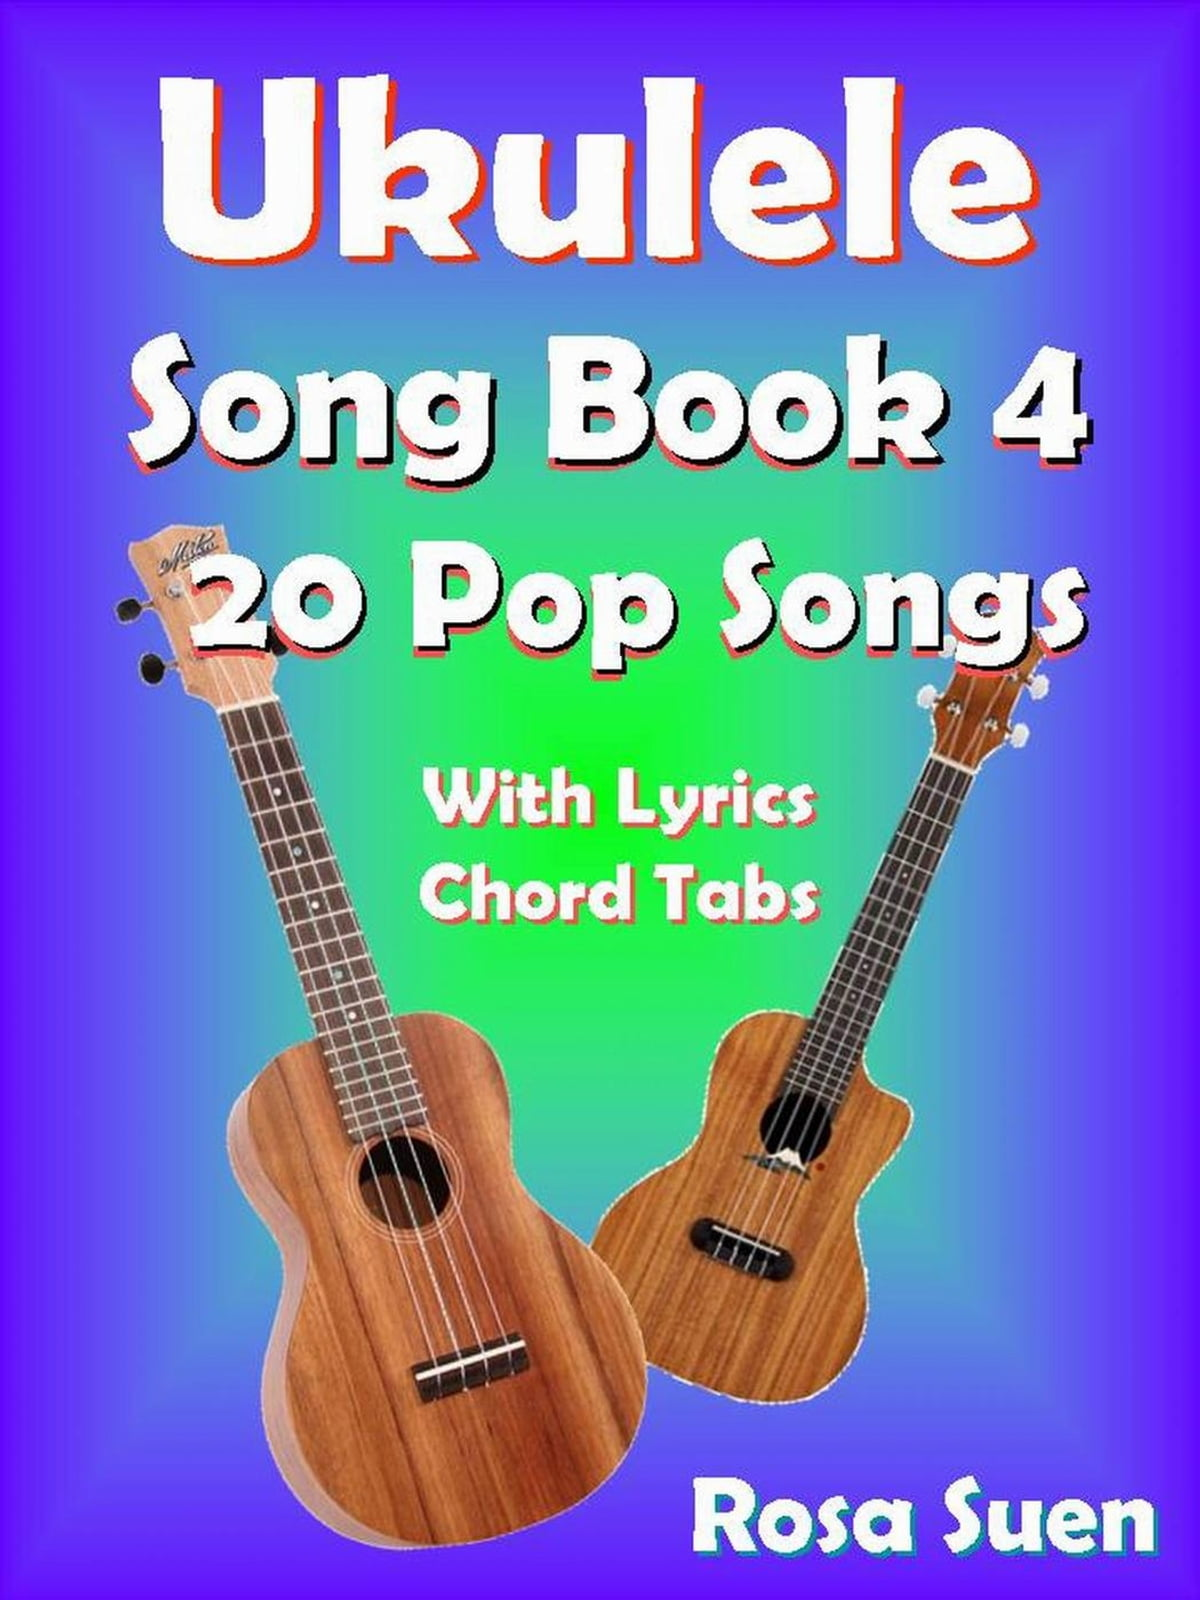 Ukulele Song Book 4 20 Pop Songs With Lyrics And Chord Tabs Ebook